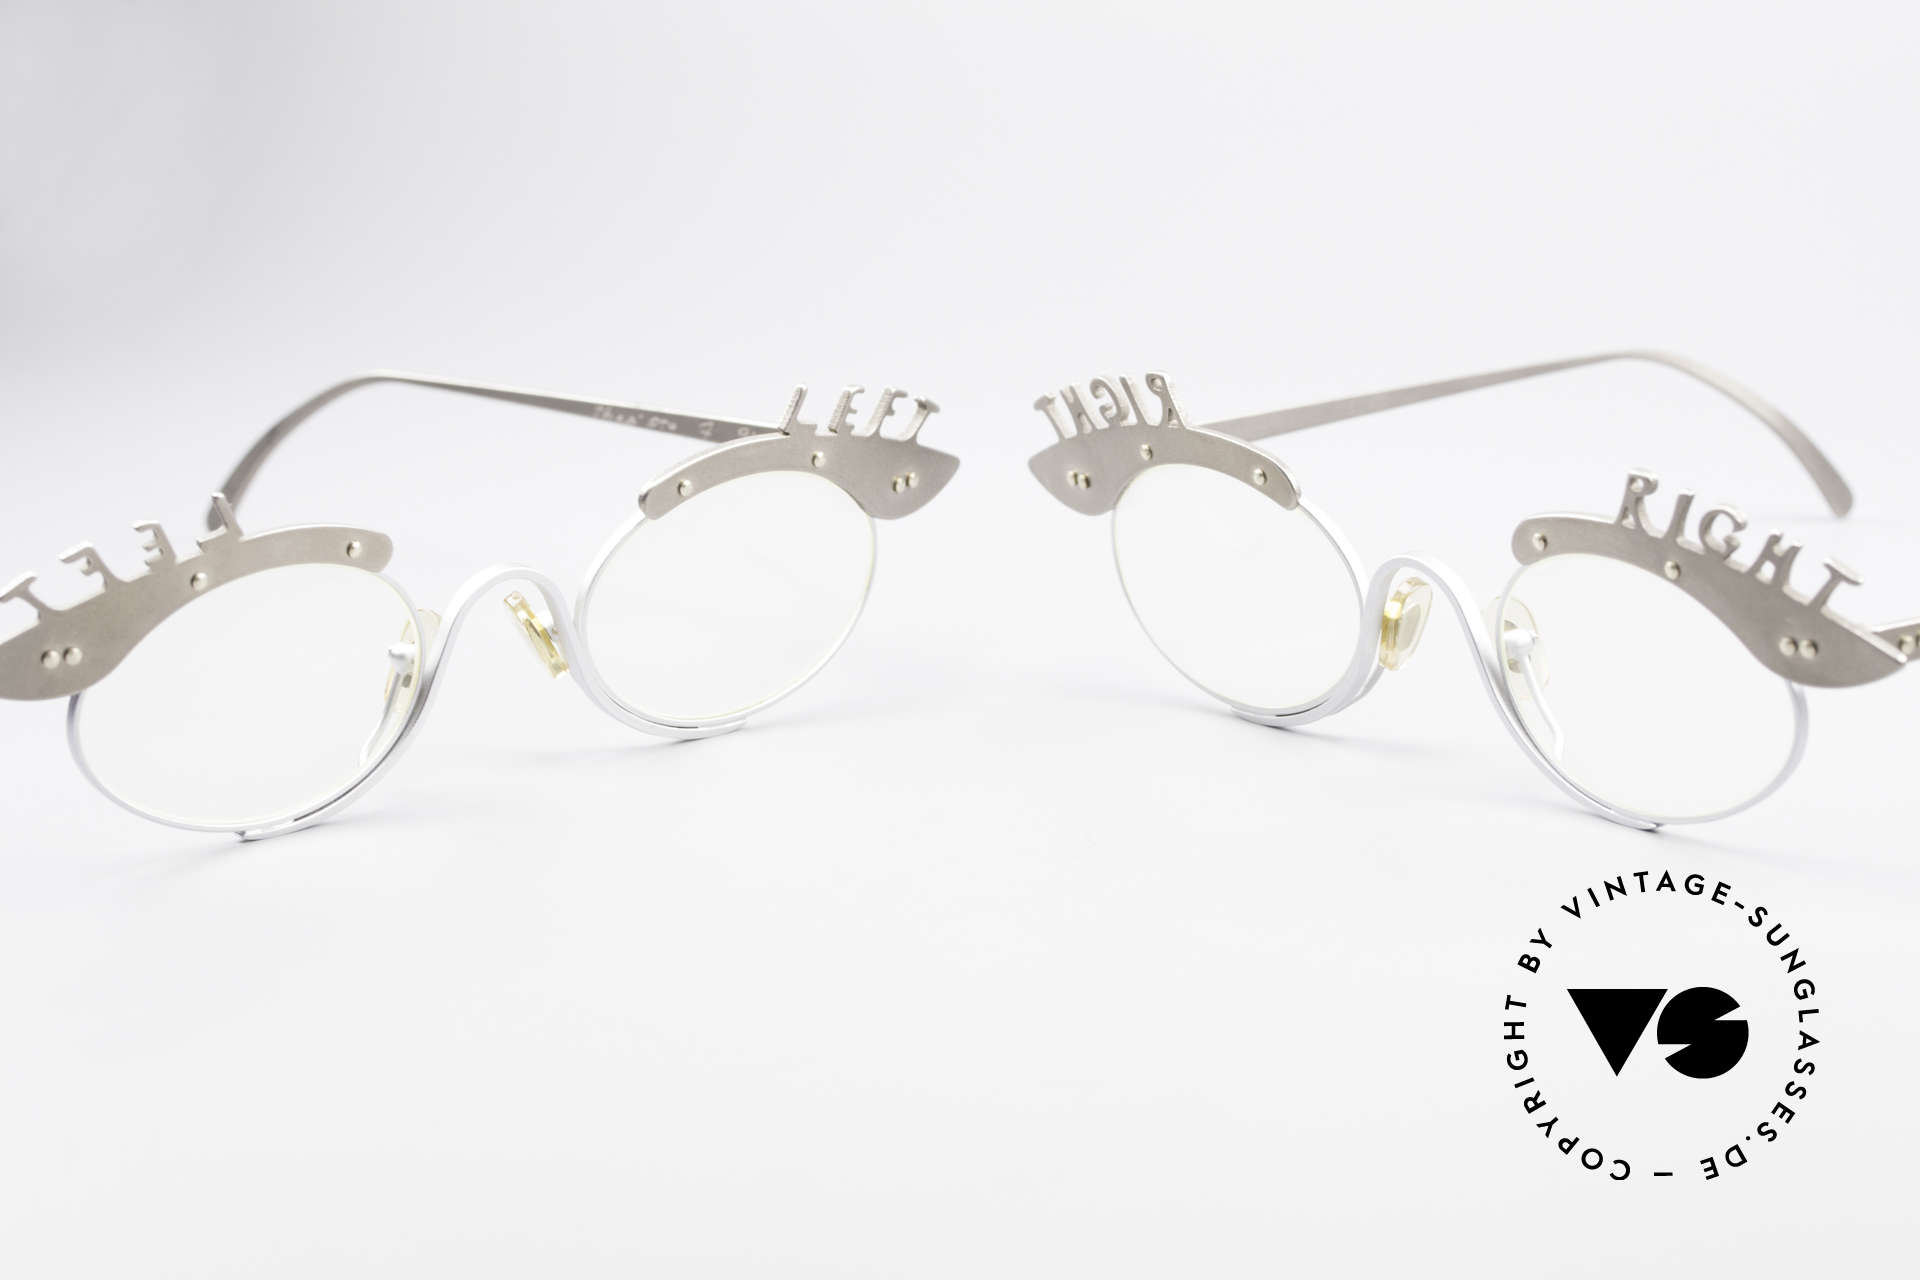 Theo Belgium Pro6 & Pro7 Two Glasses Left and Right, founded in 1989 as 'opposite pole' to the 'mainstream', Made for Women